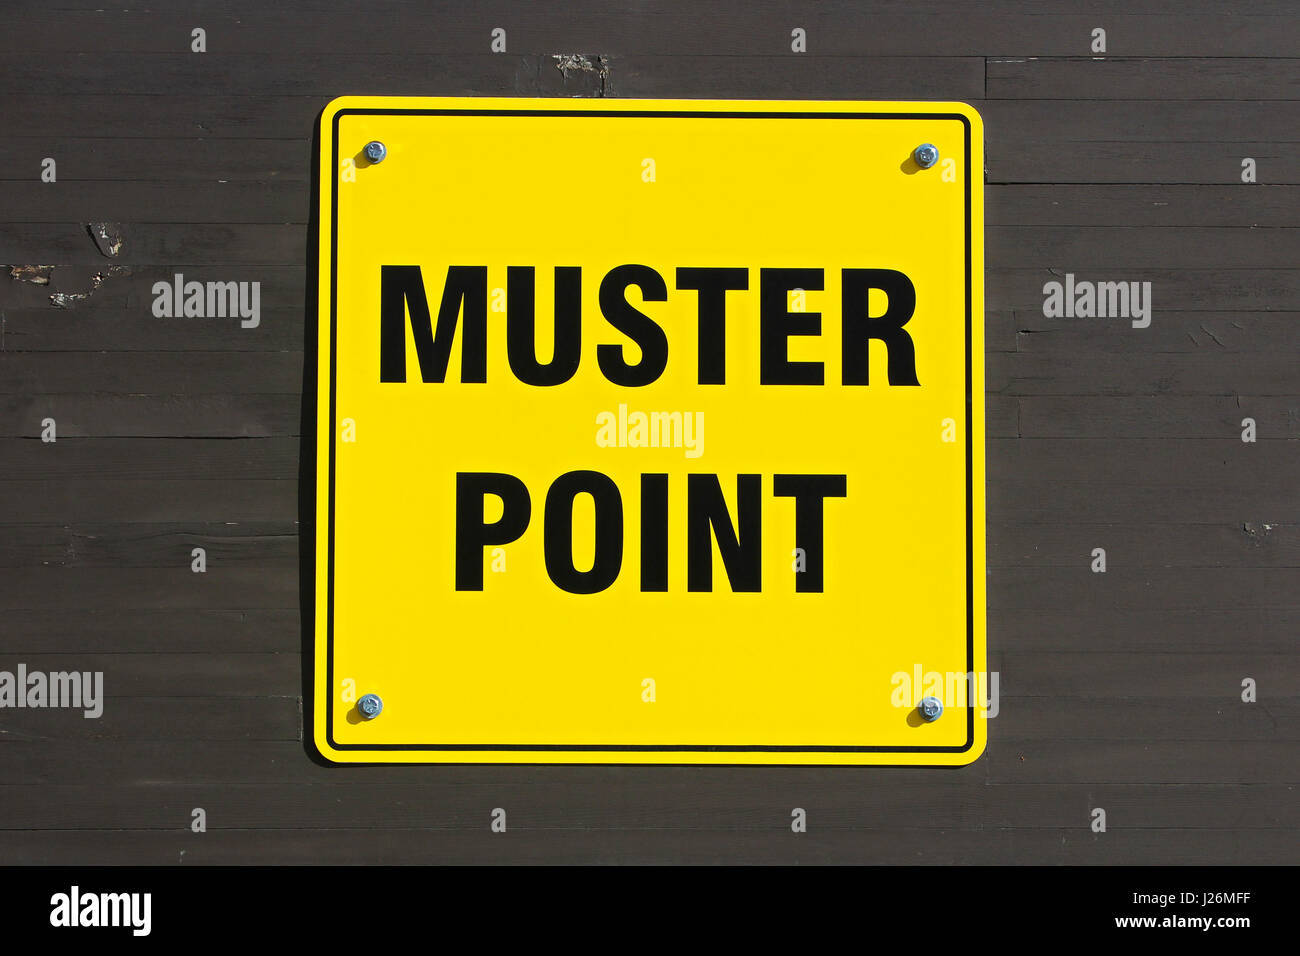 Muster point sign on a wall. - Stock Image